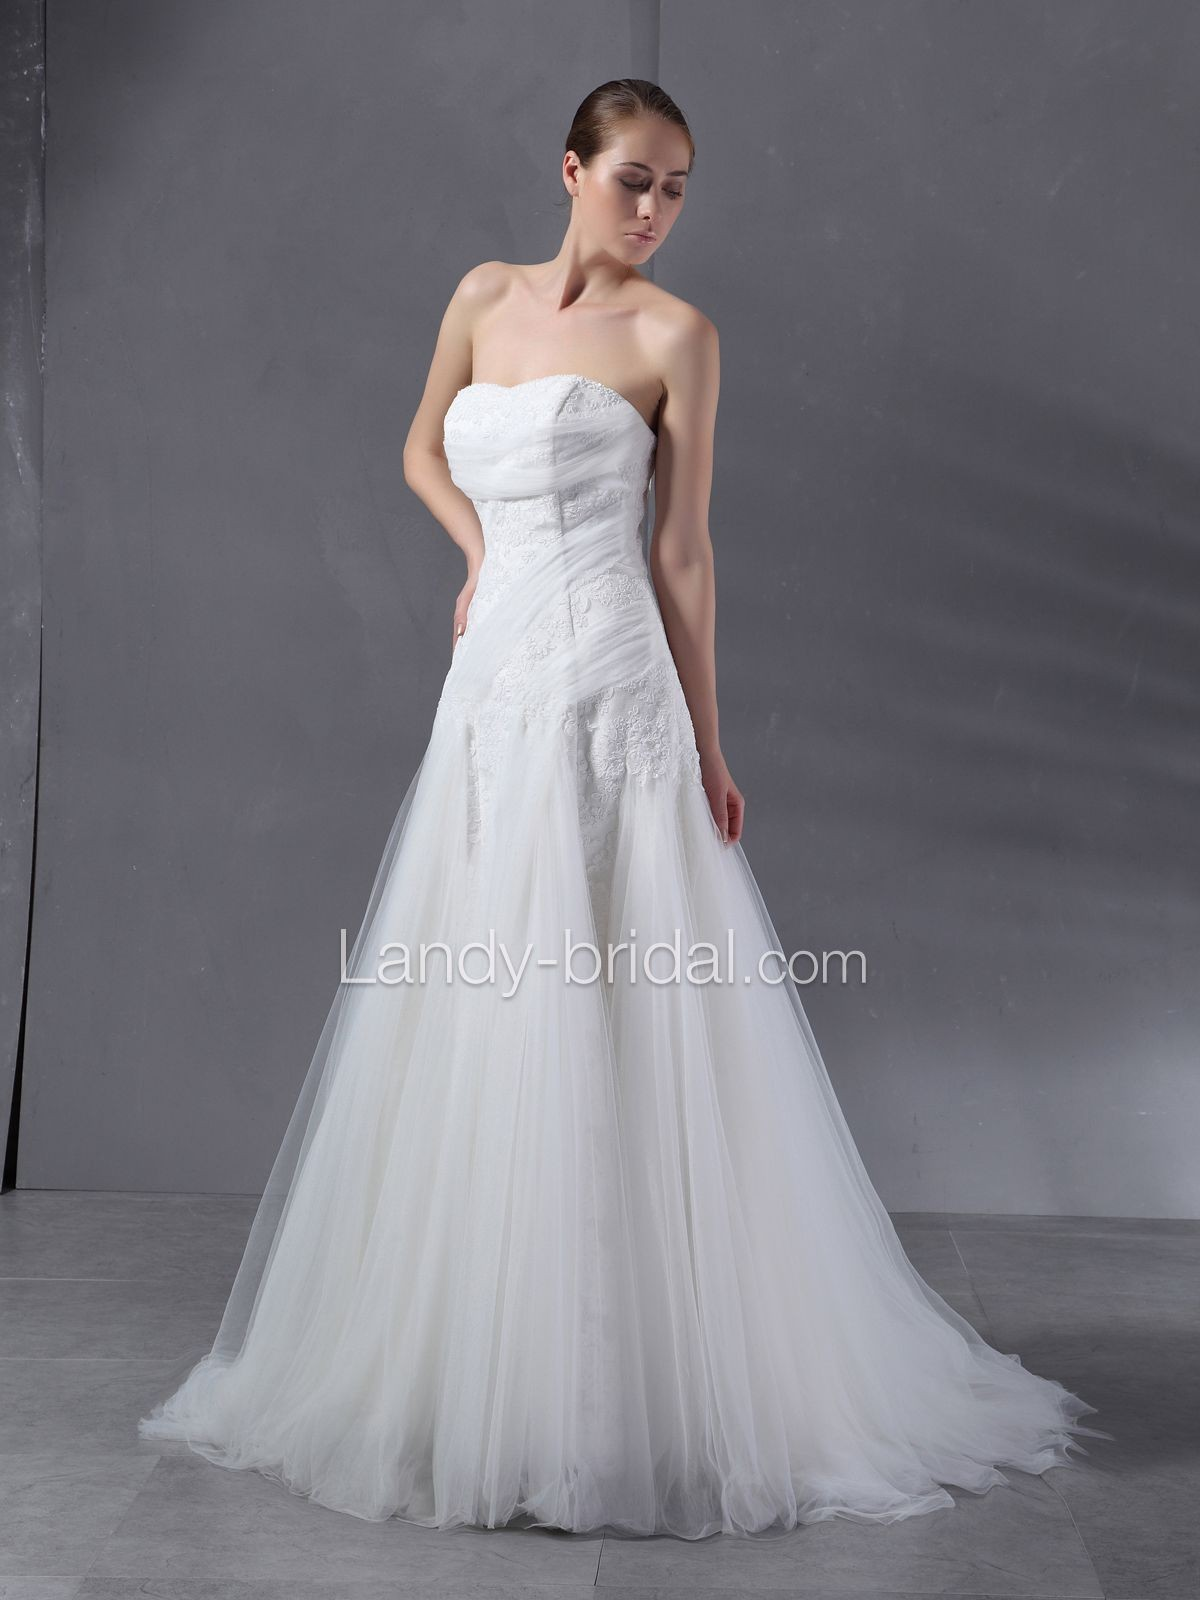 Big women wedding dresses wedding short dresses big women wedding dresses ombrellifo Images